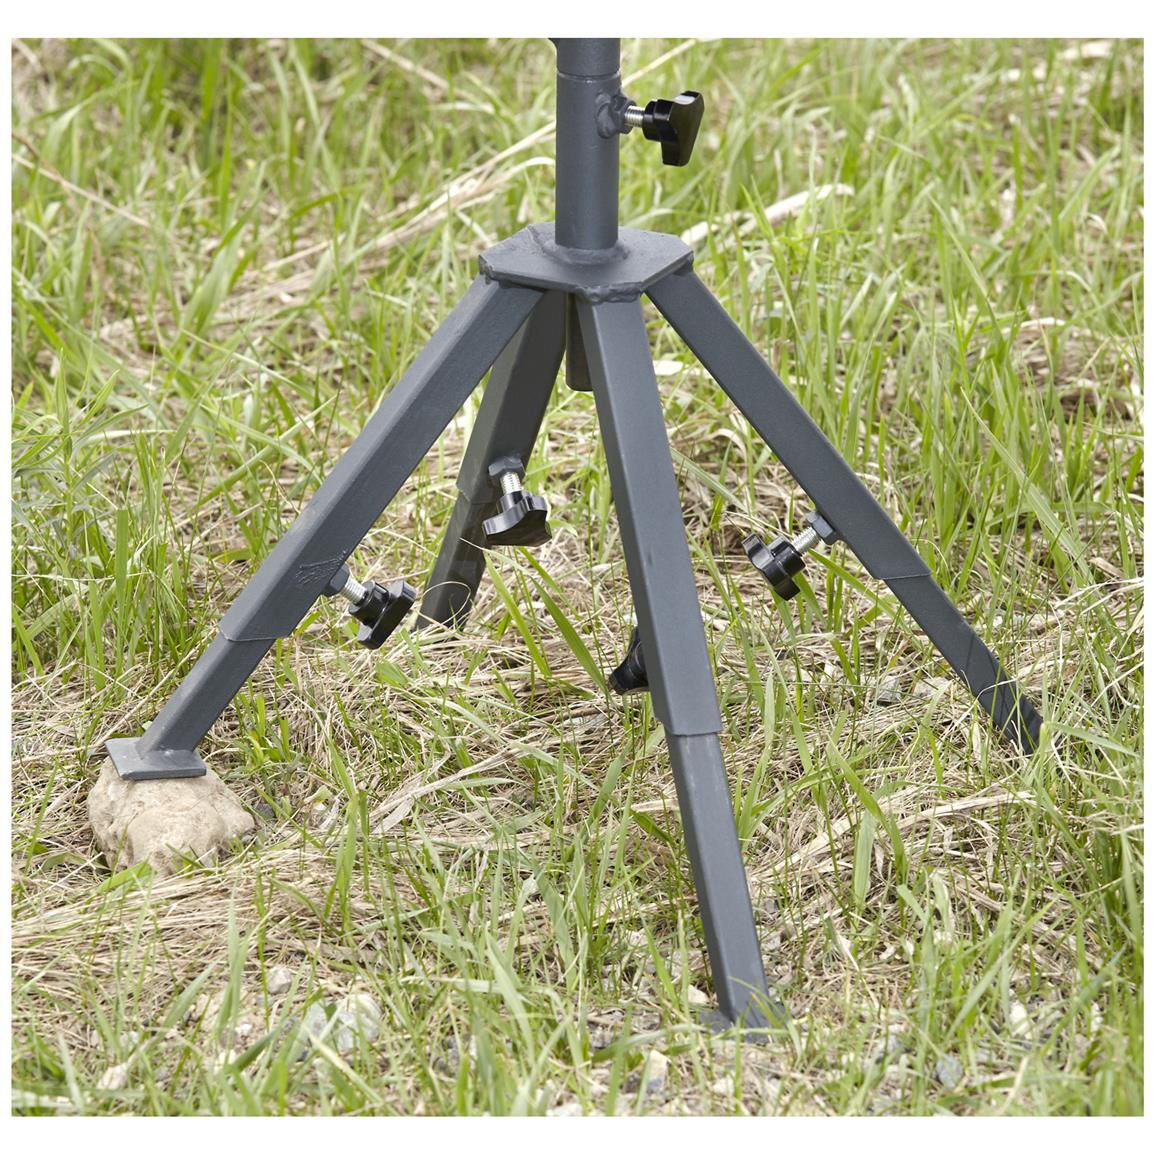 4 level-adjustable aluminum legs allow for a stability on any terrain